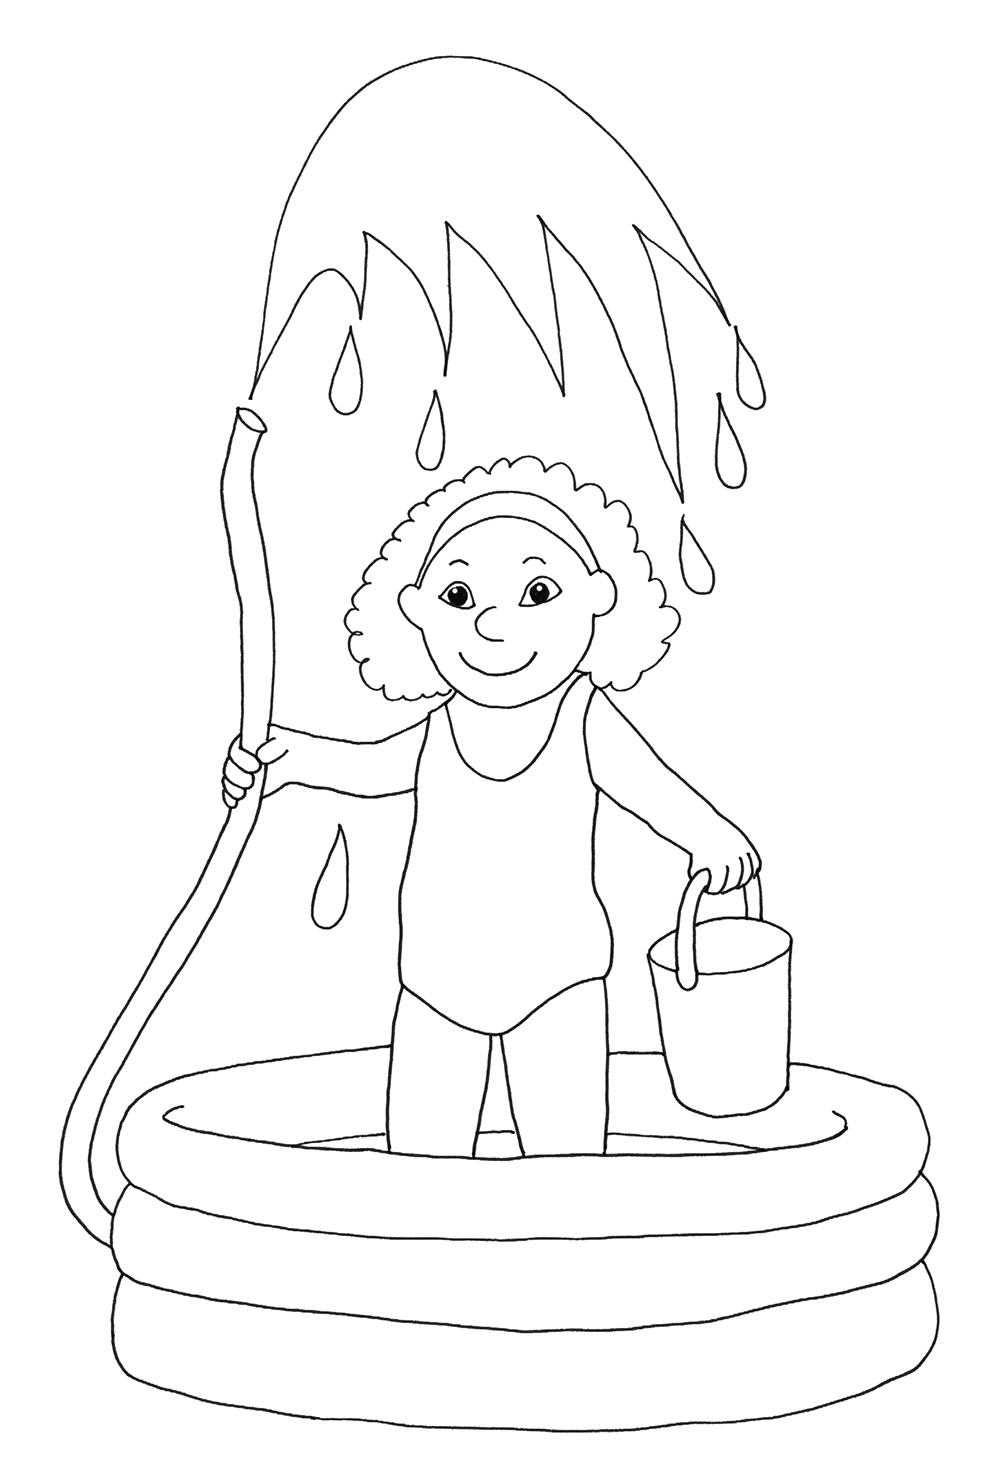 beach girl coloring pages 25 free printable beach coloring pages coloring pages girl beach